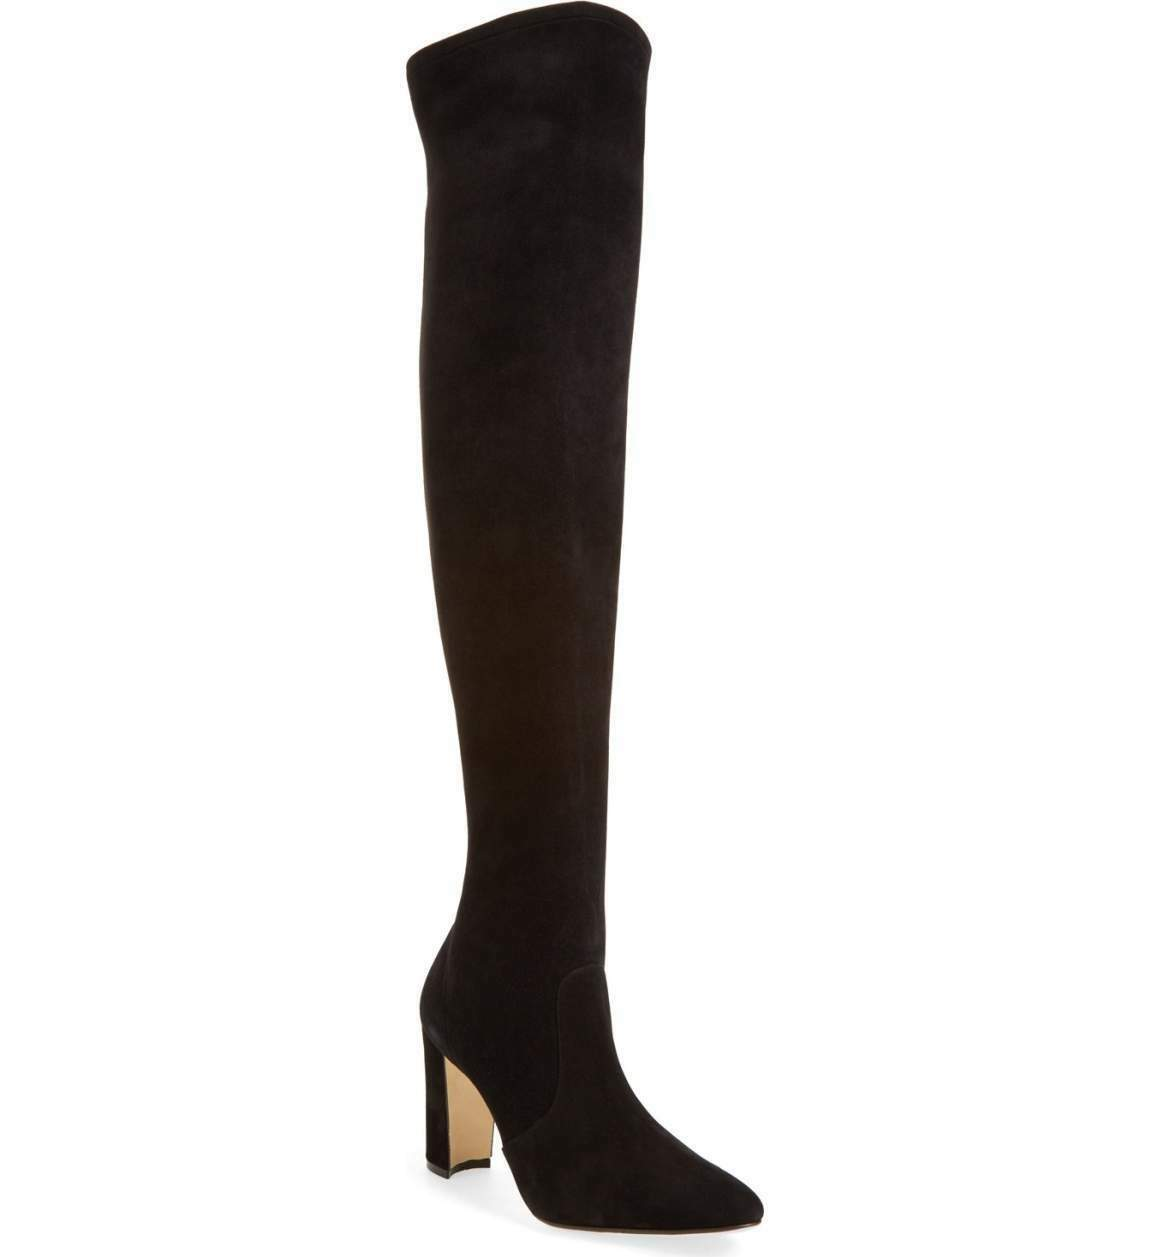 New sz 8 / 38.5 Manolo Blahnik Pascalla Over the Knee Black Suede Boot Shoes